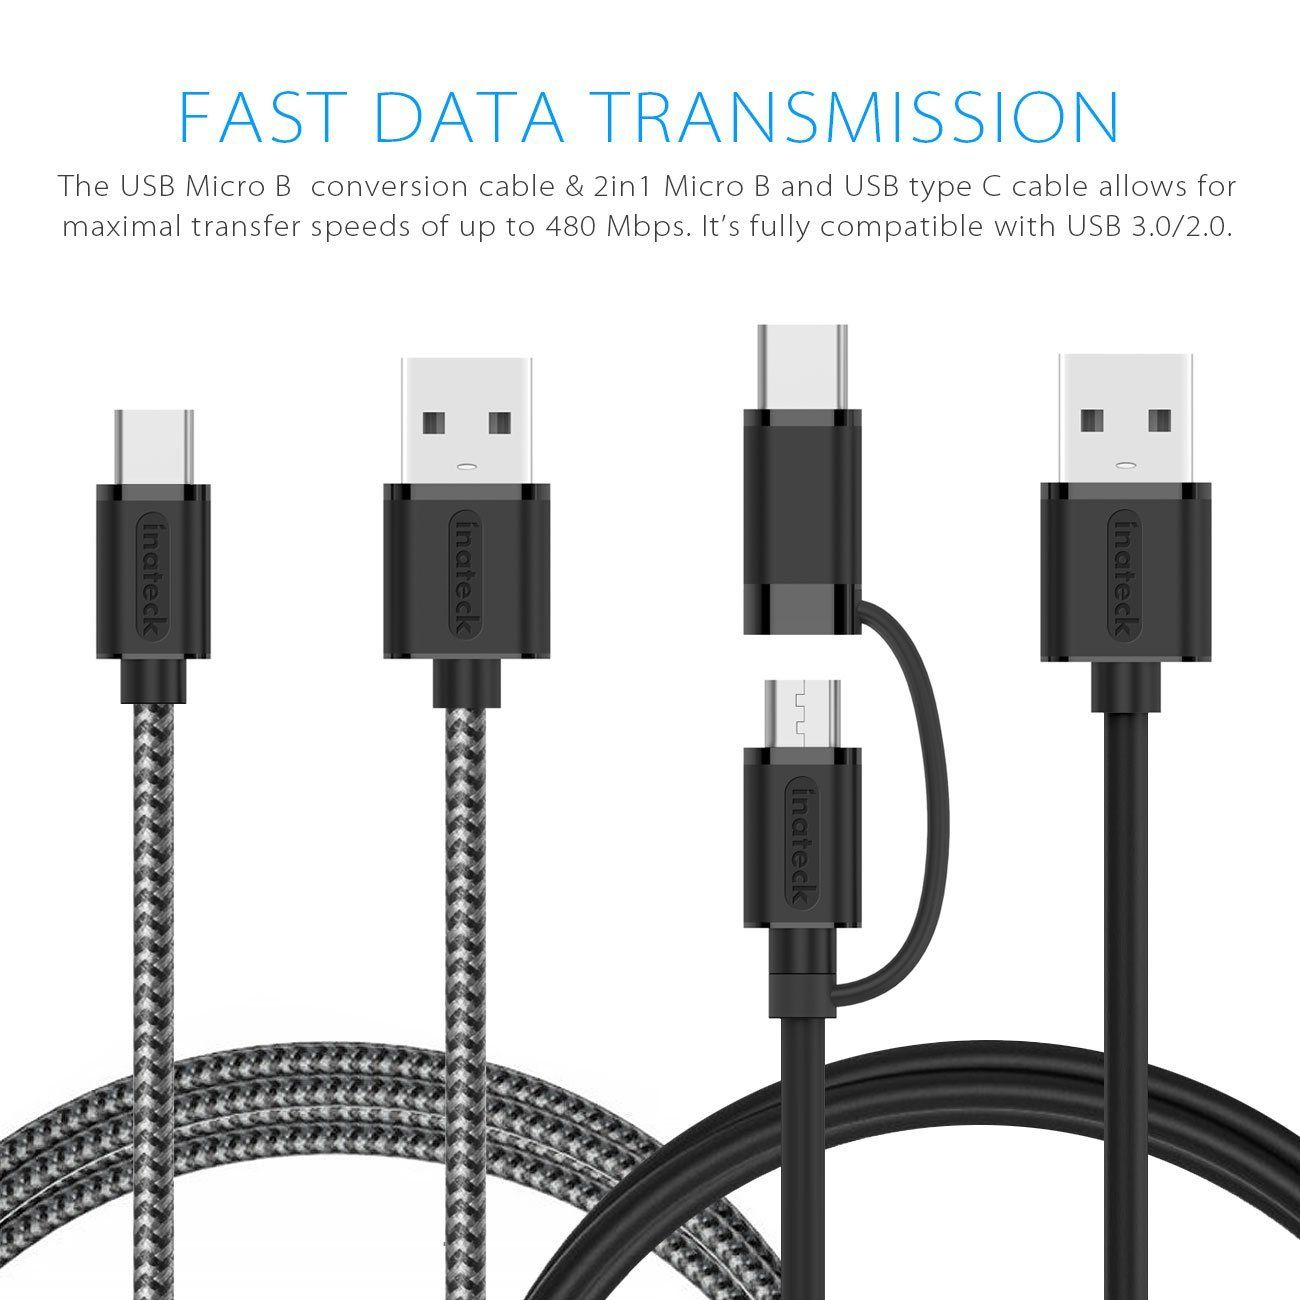 [2 units] USB Type C Data Cable CA2105